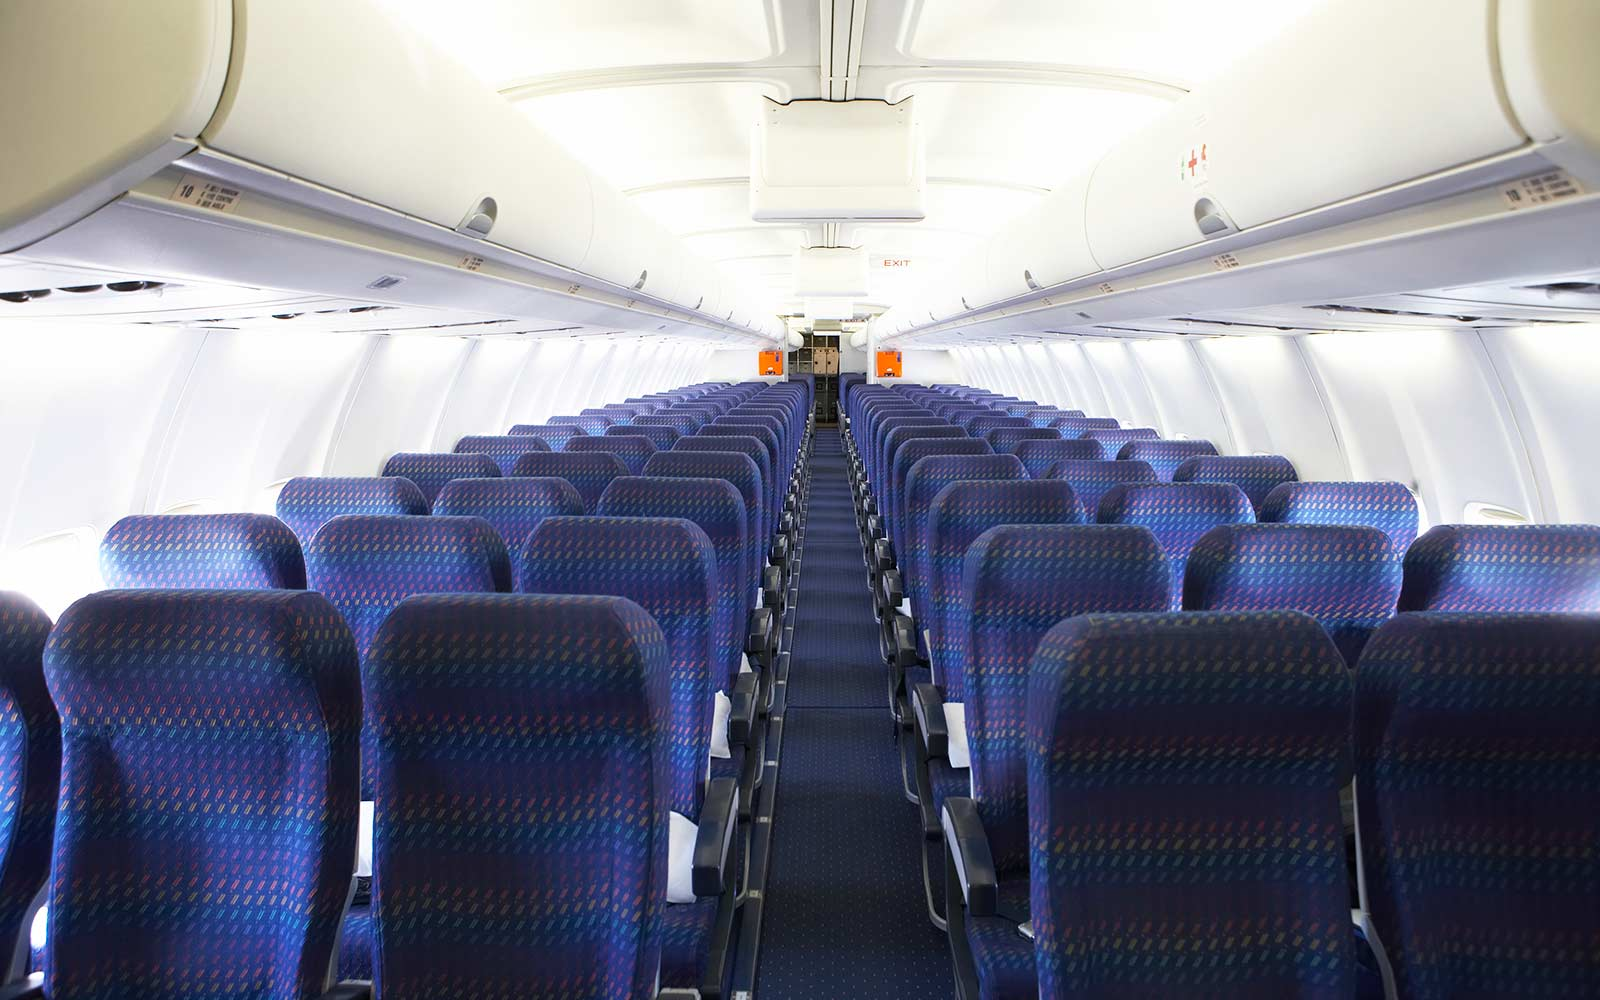 Rows of empty seats on airplane